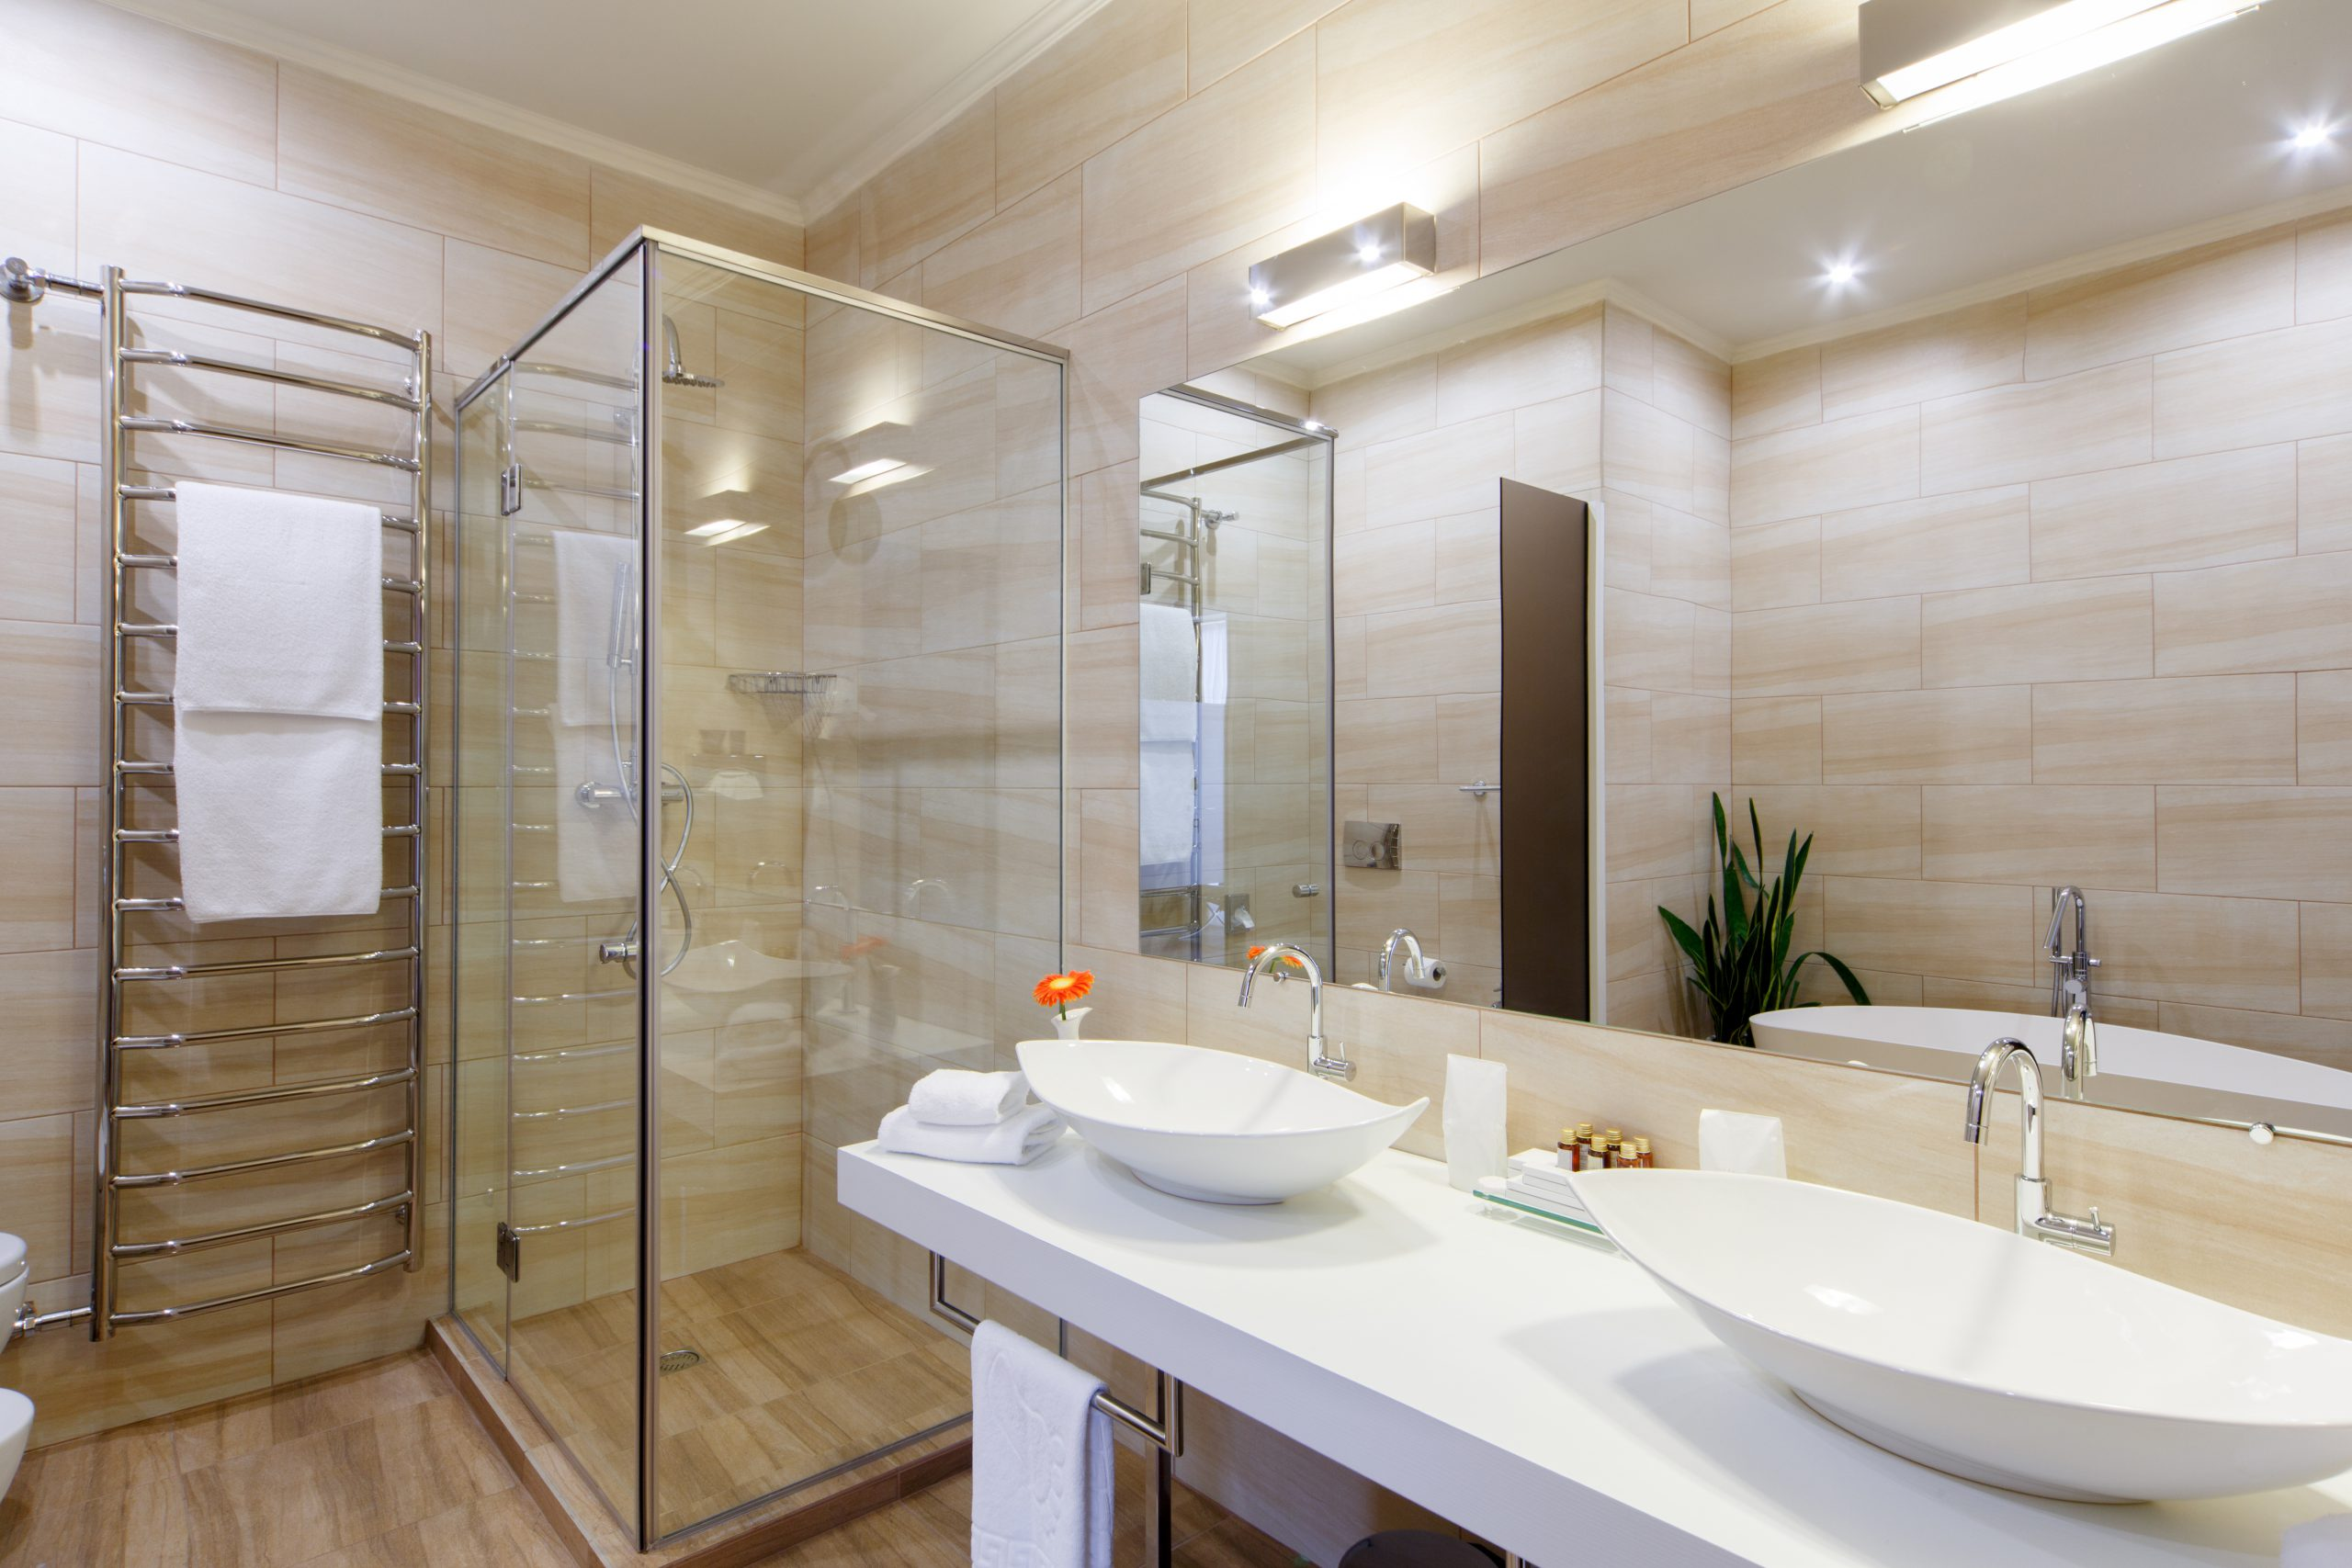 double sink bath with open glass shower